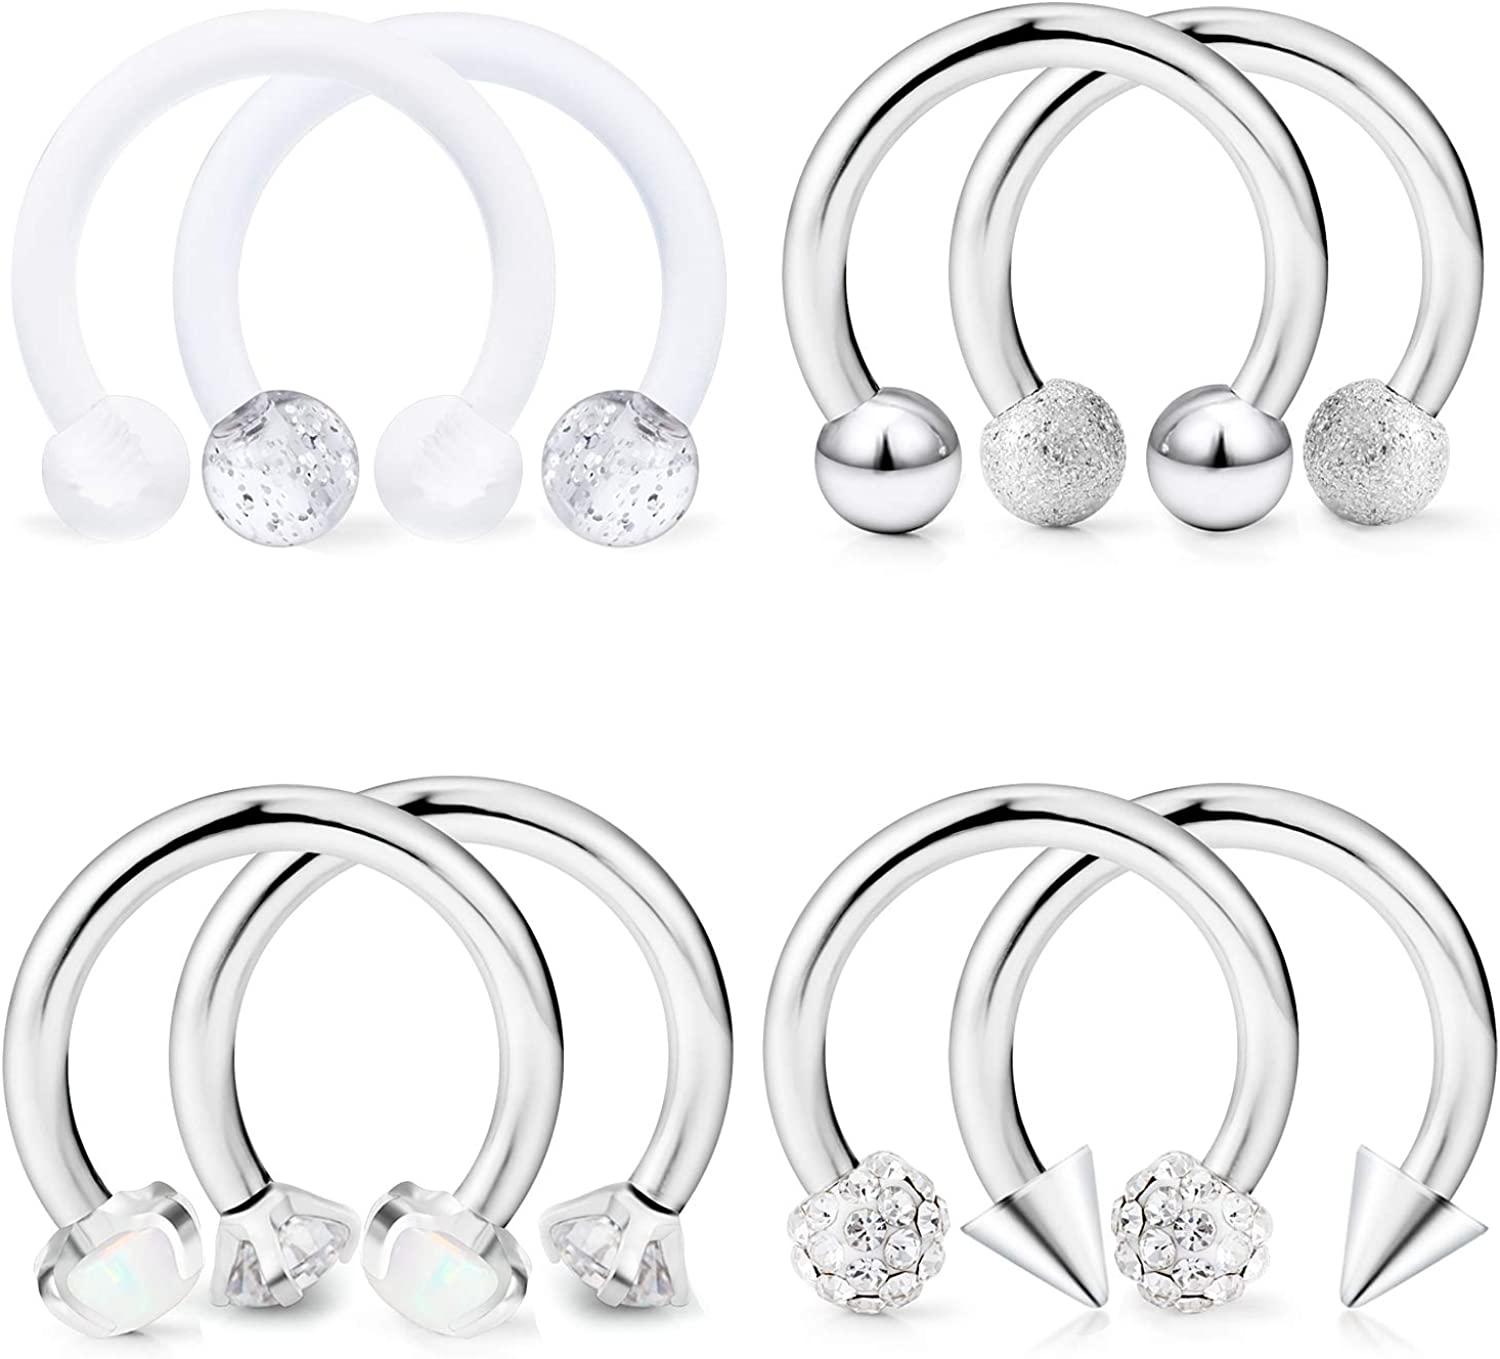 Dyknasz Horseshoe Circular Barbell Clear CZ Opal Stone Nose Septum Rings Hoop Retainer for Women Men Helix Cartilage Tragus Earring 316L Surgical Steel 16G 5//16 8mm 10mm 3//8